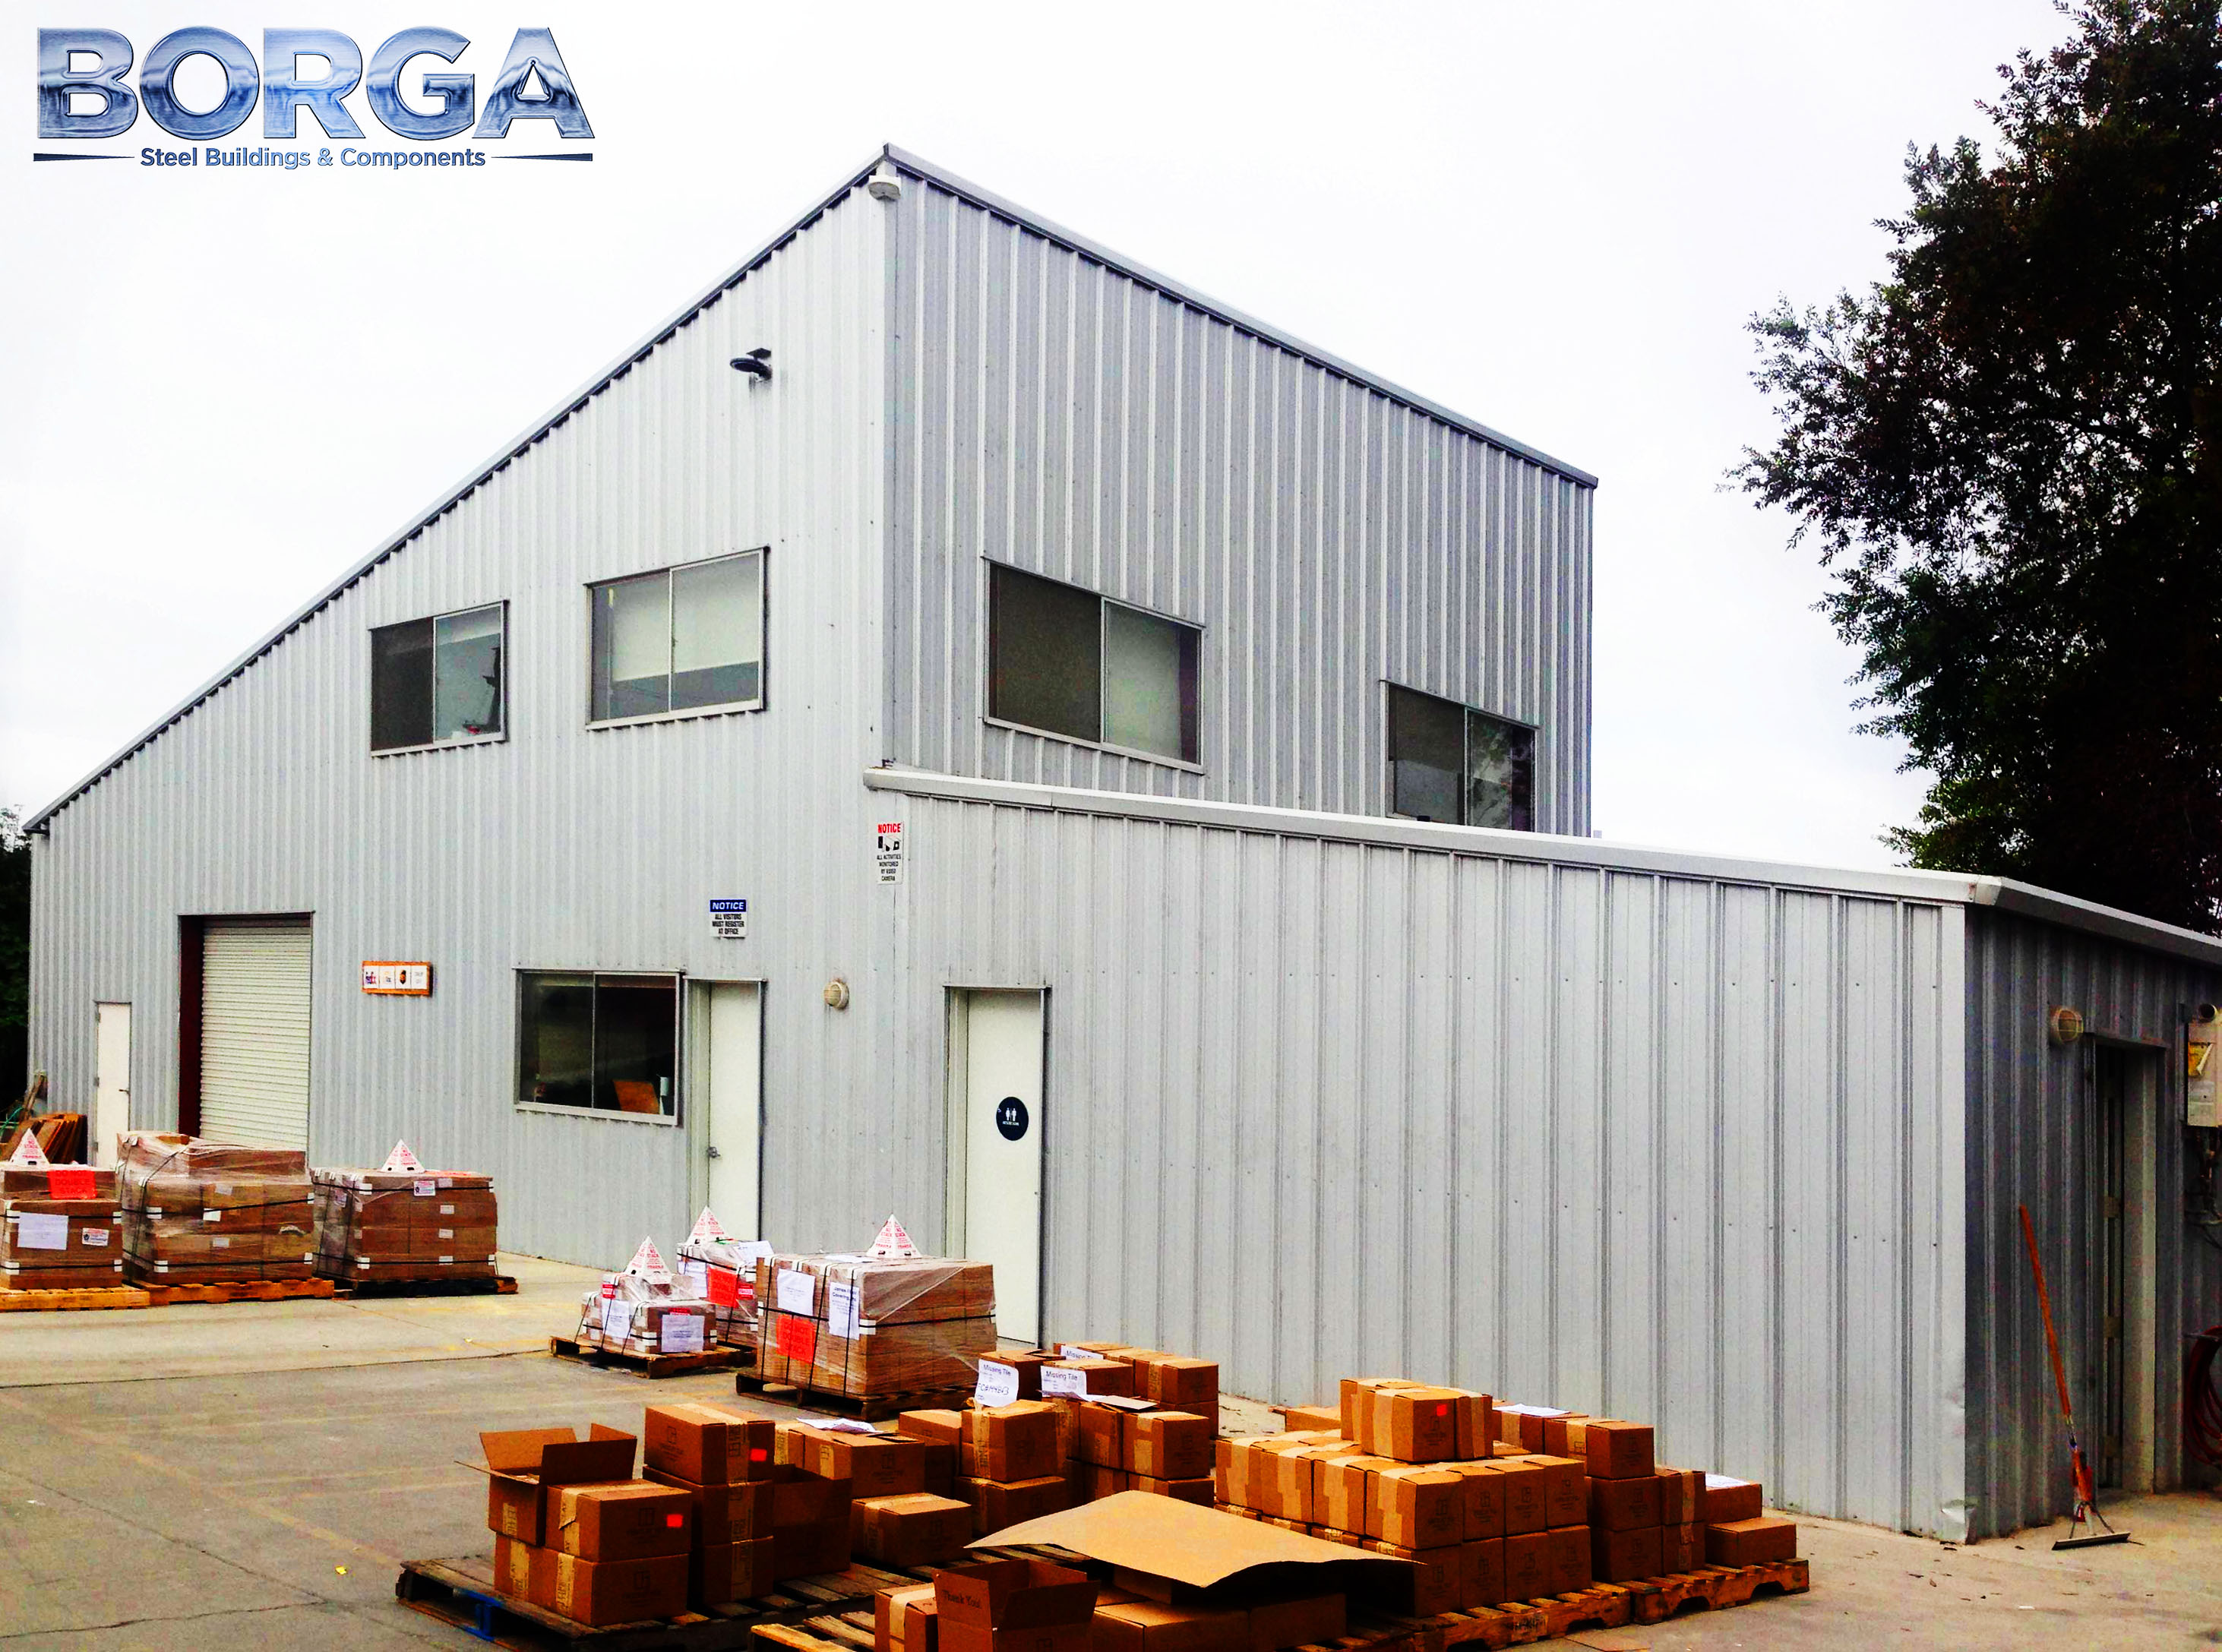 borga steel buildings and components fresno ca sheeting metal fireclay tile aromas ca 1